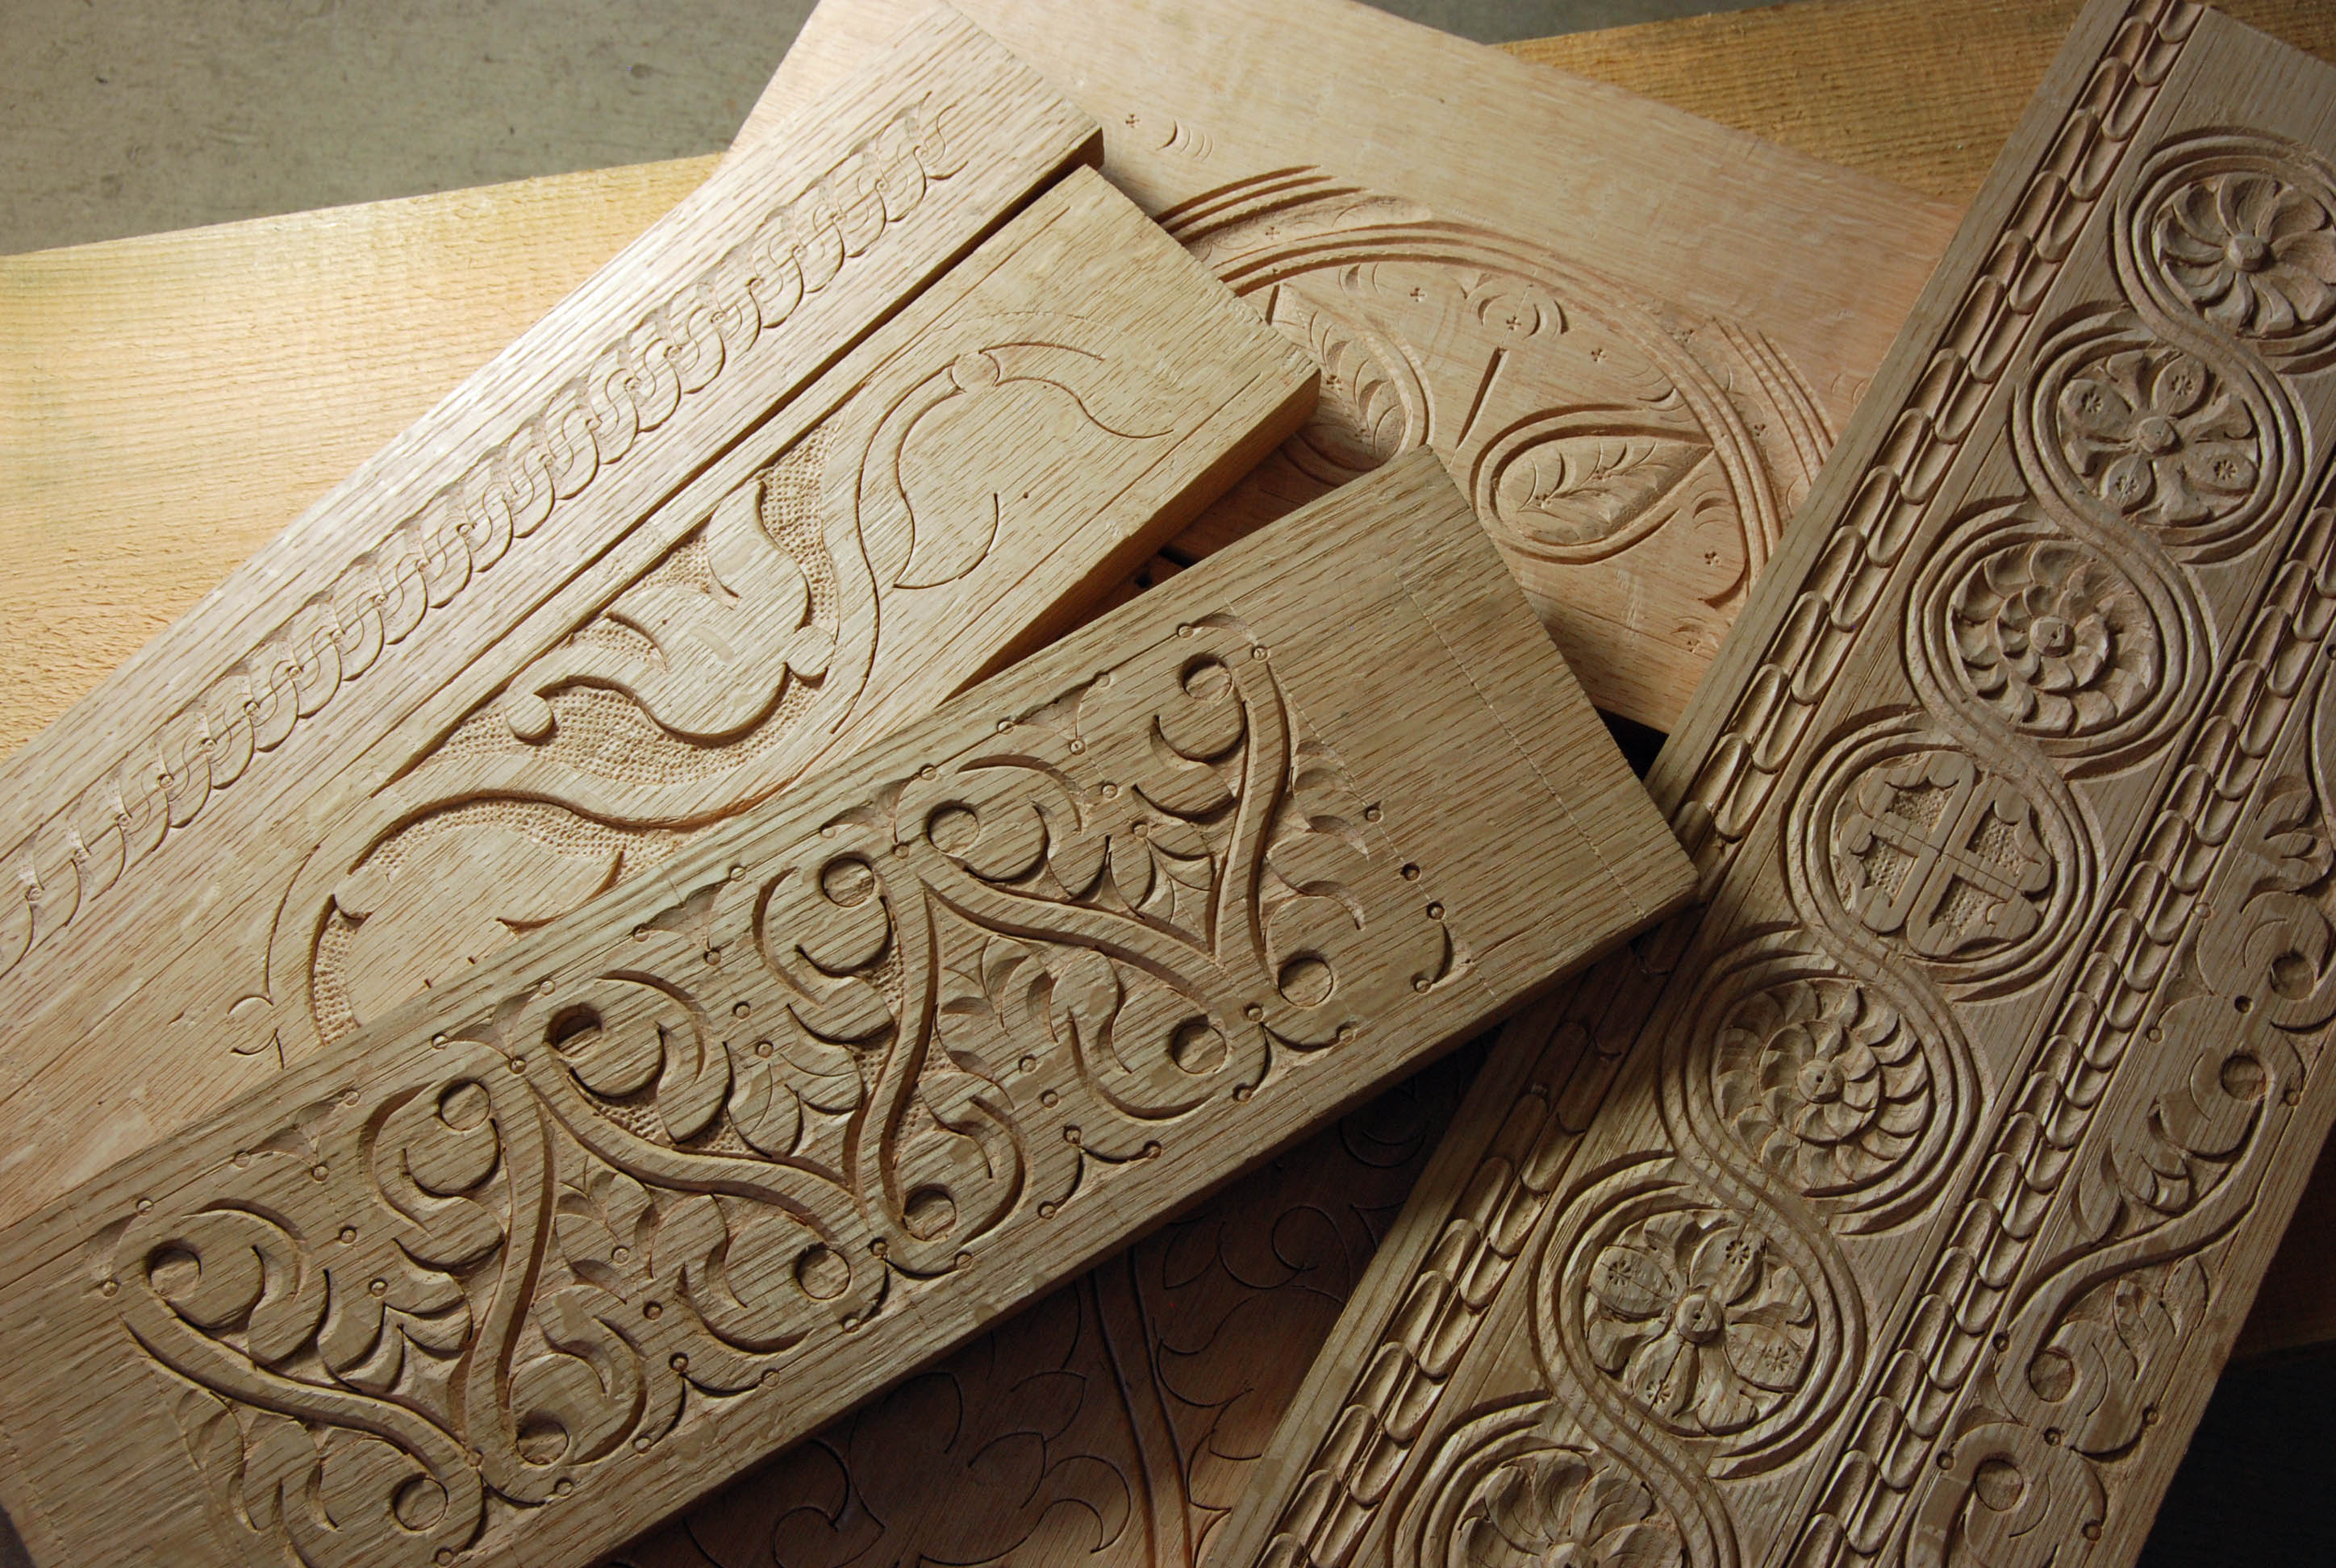 17th-century carving workshop, Feb 9 & 10, 2013 at ...